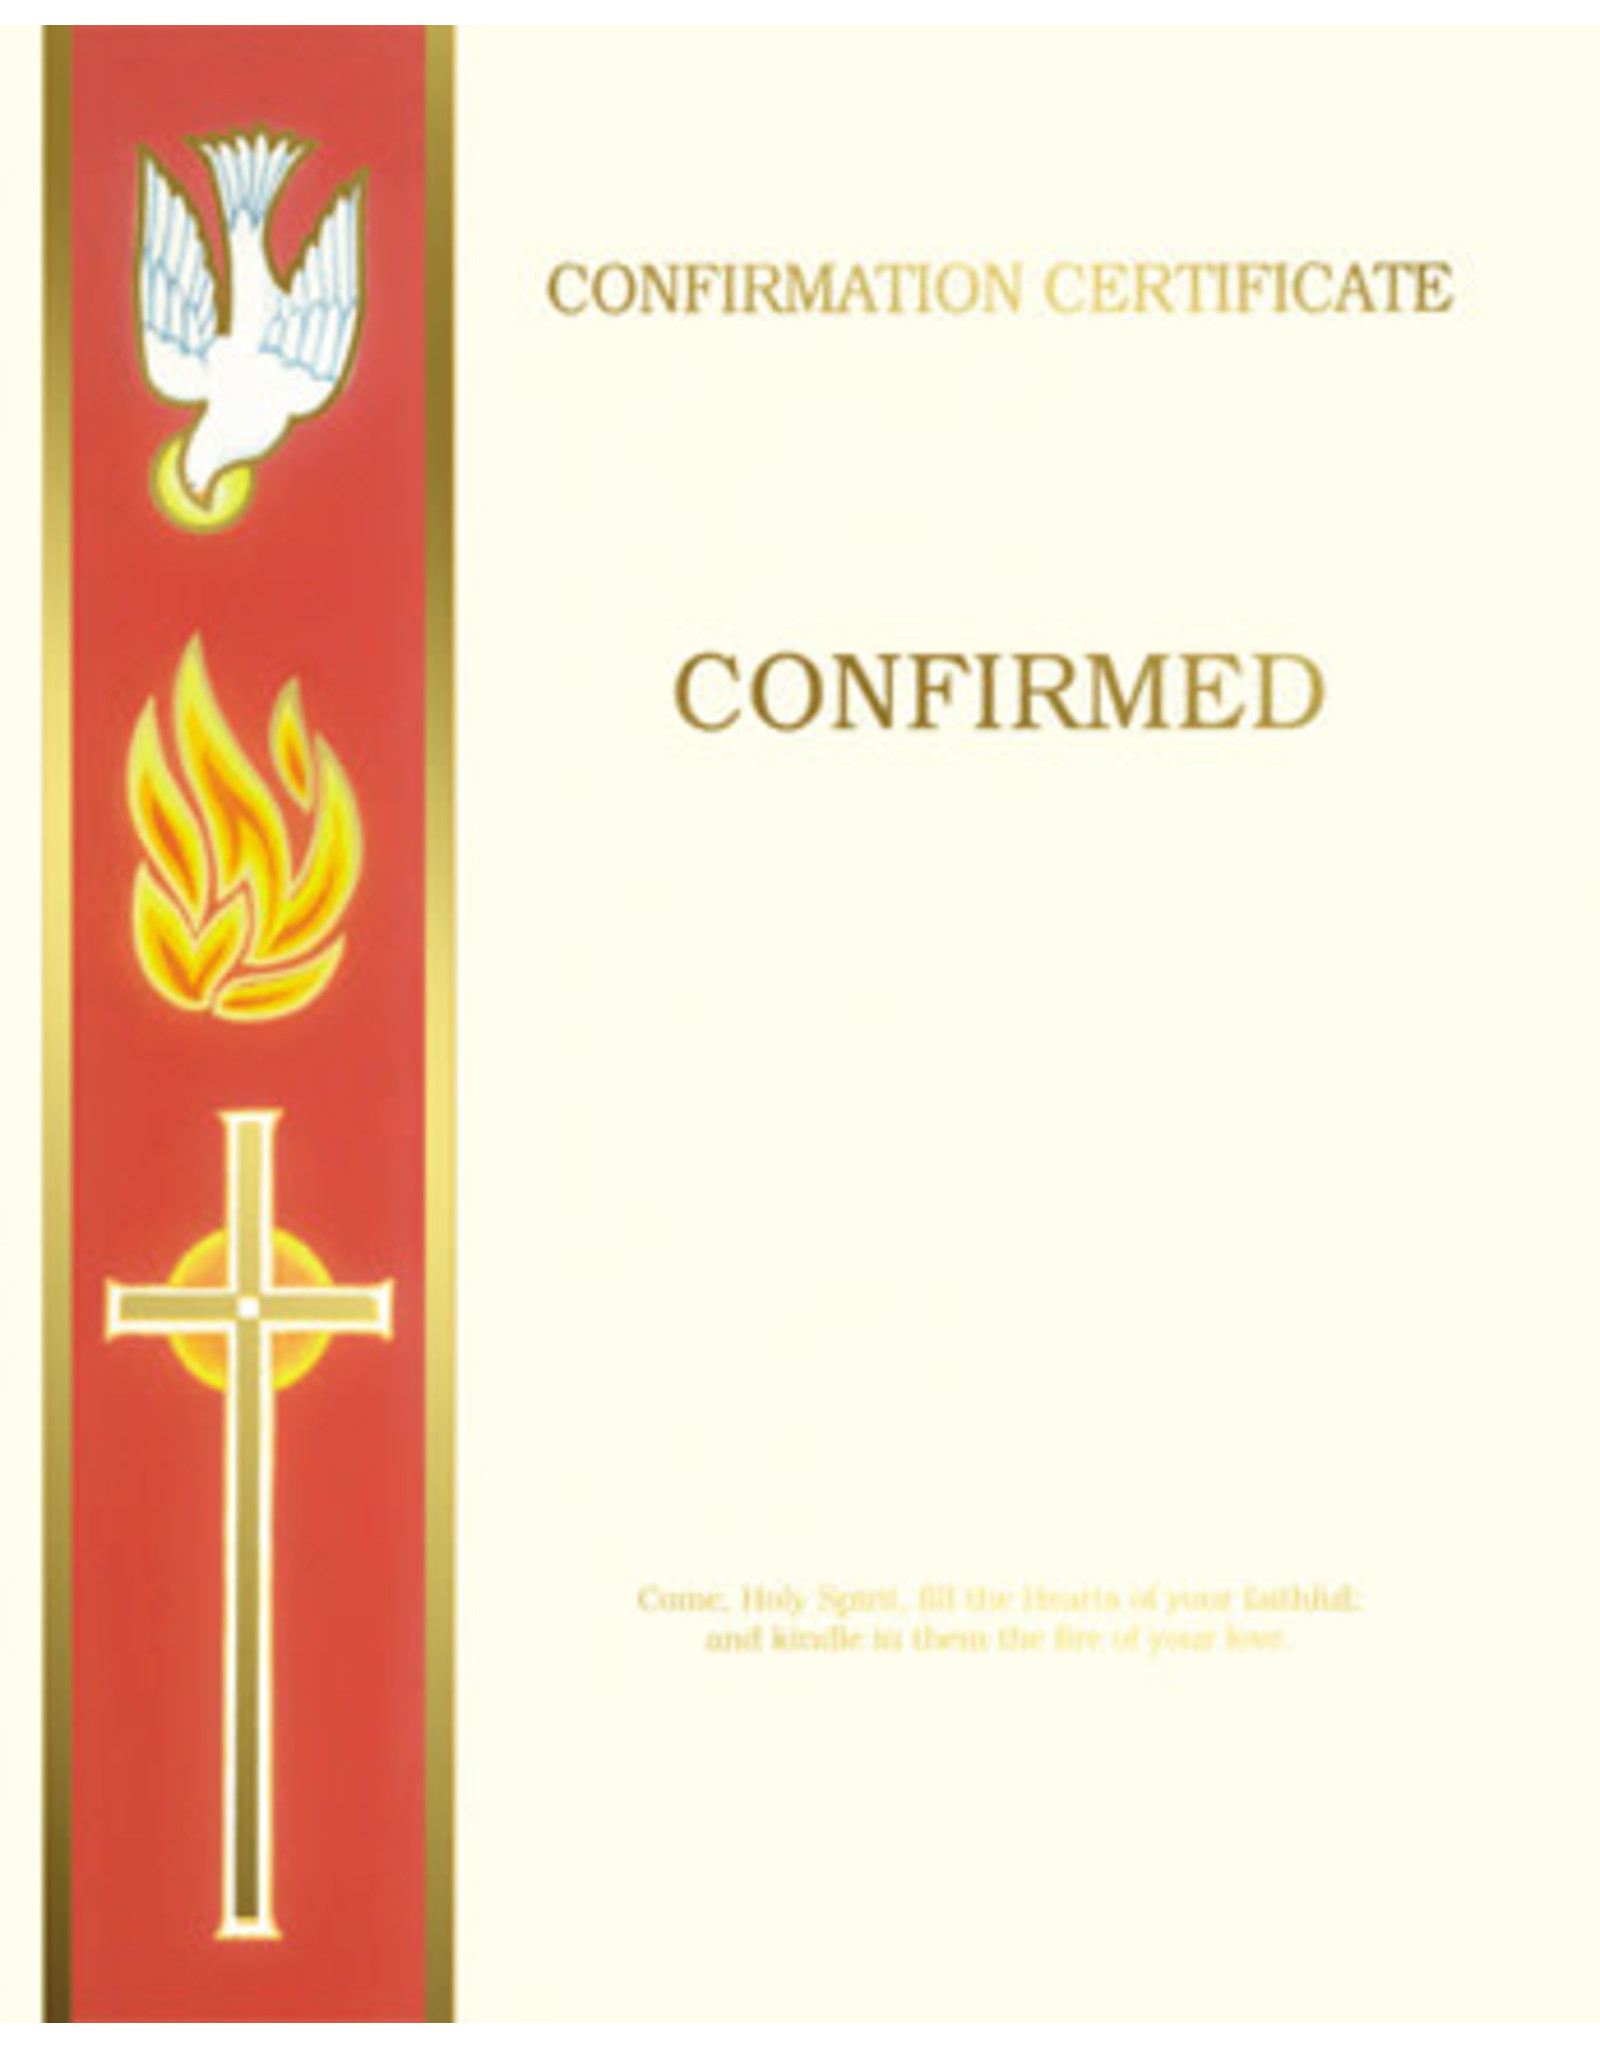 Certificate Confirmation Create-Your-Own (50)